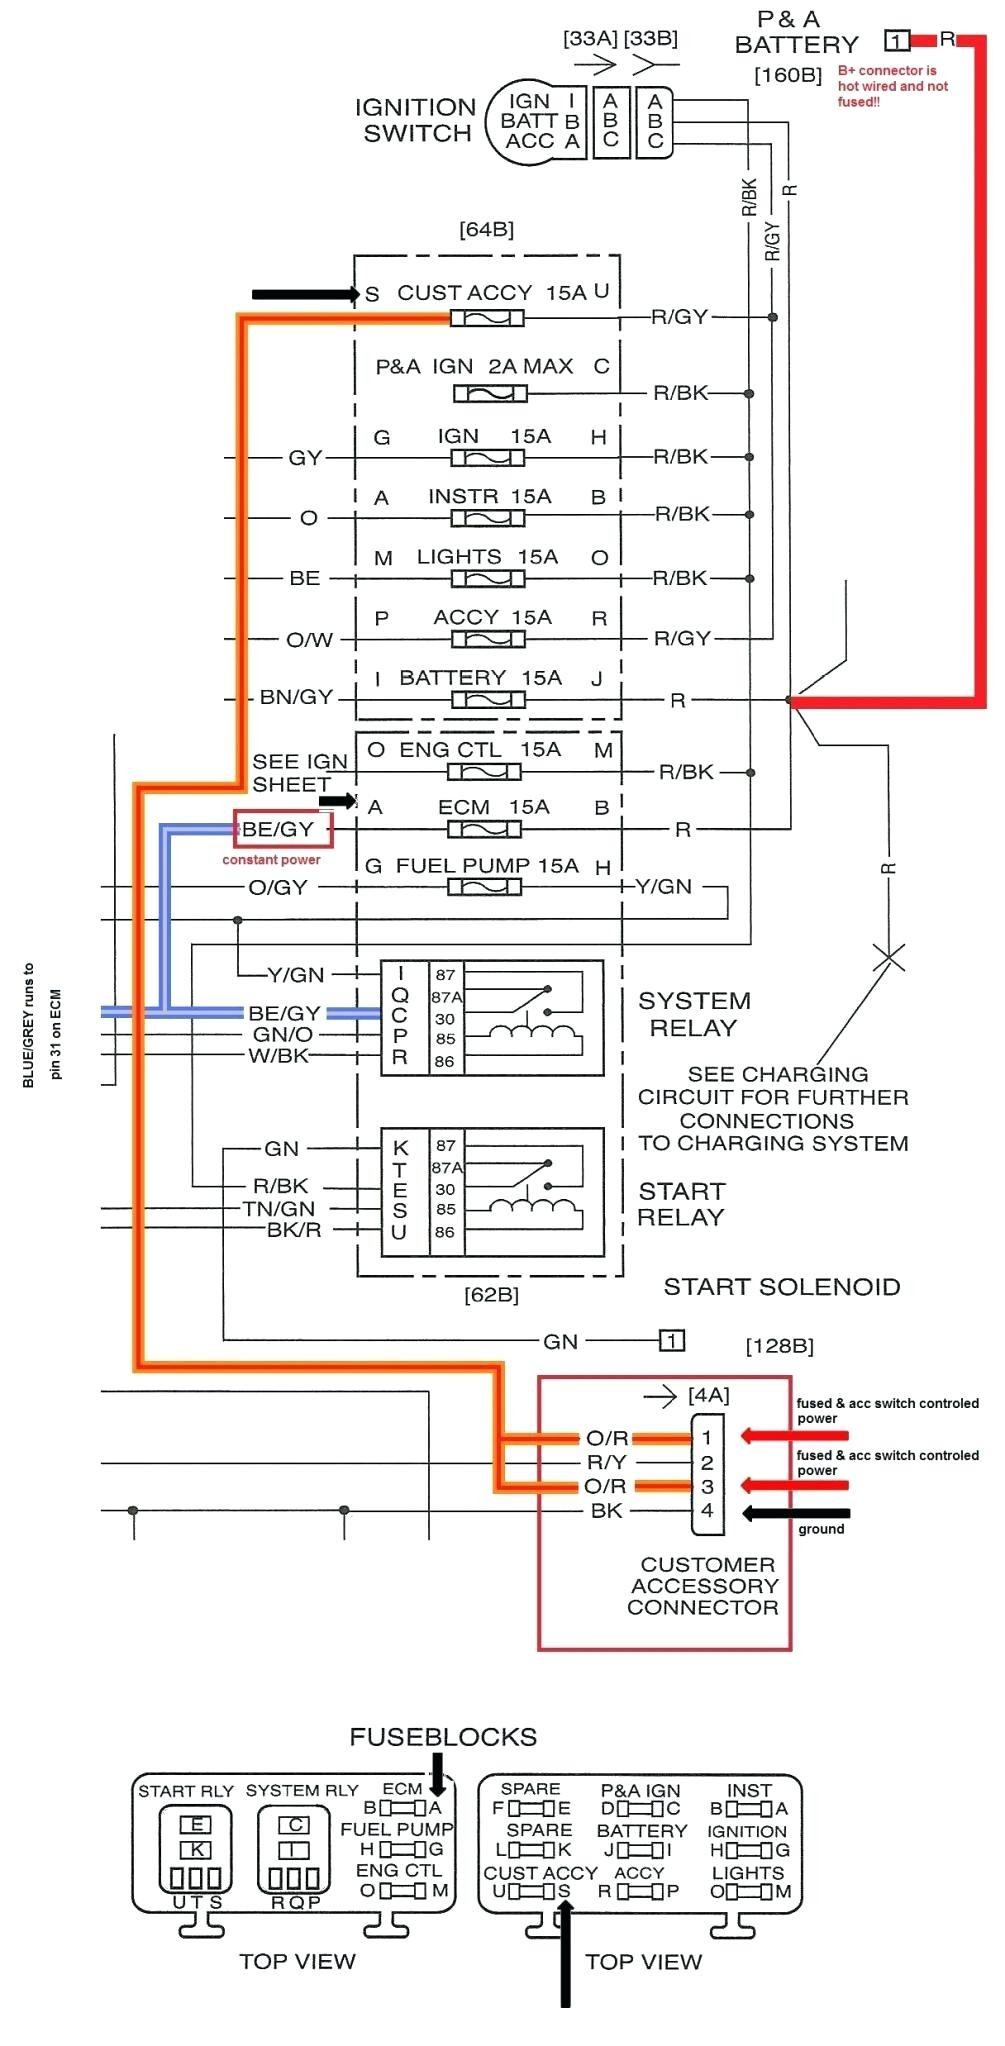 Harley Electra Glide Wiring Harness Diagram - Wiring ... on